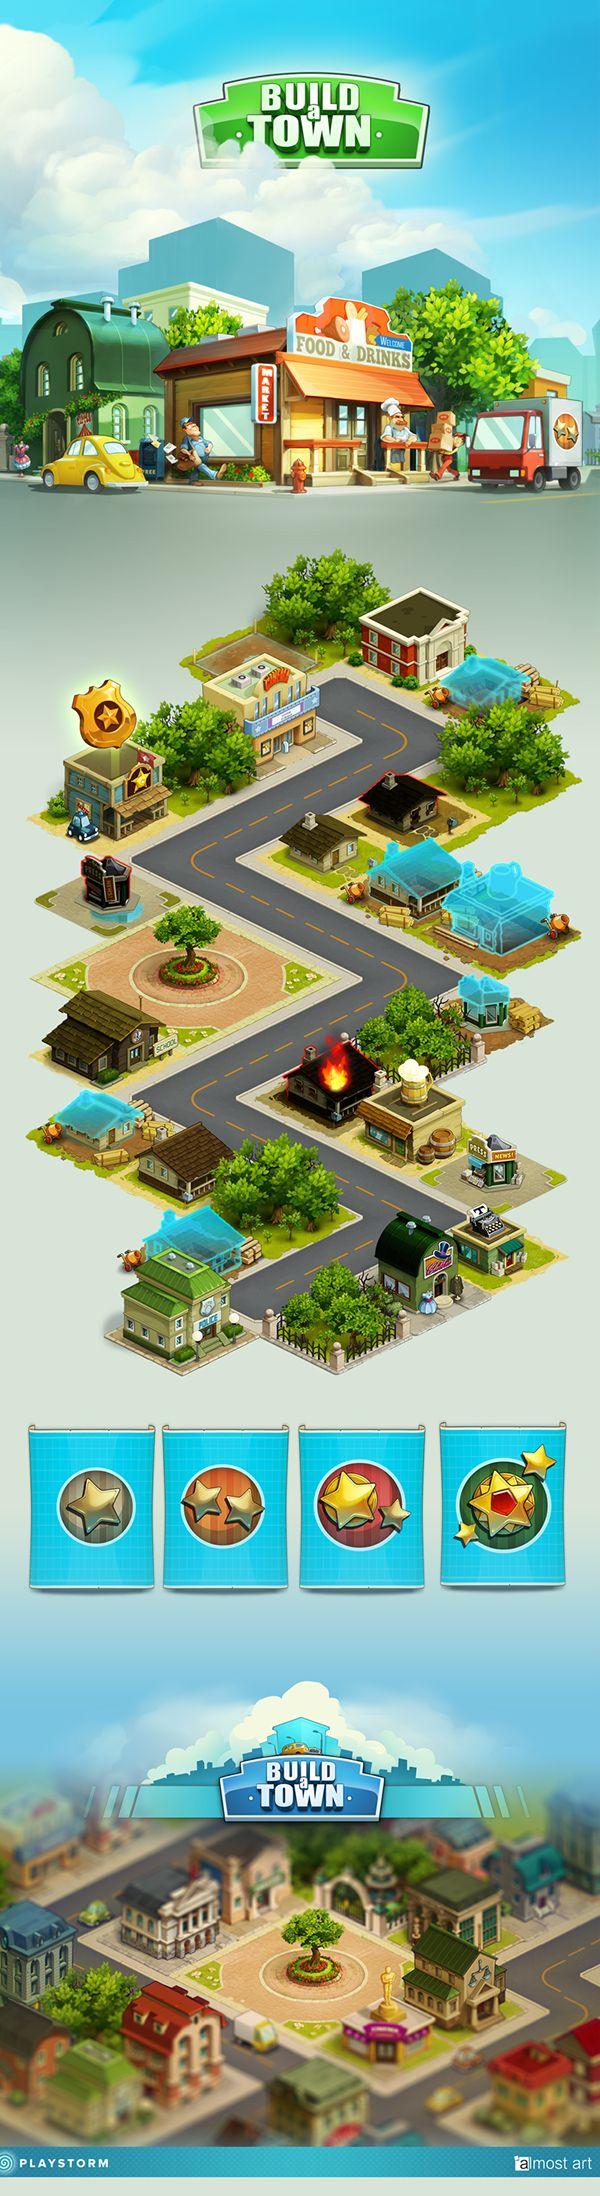 Build a town on Behance